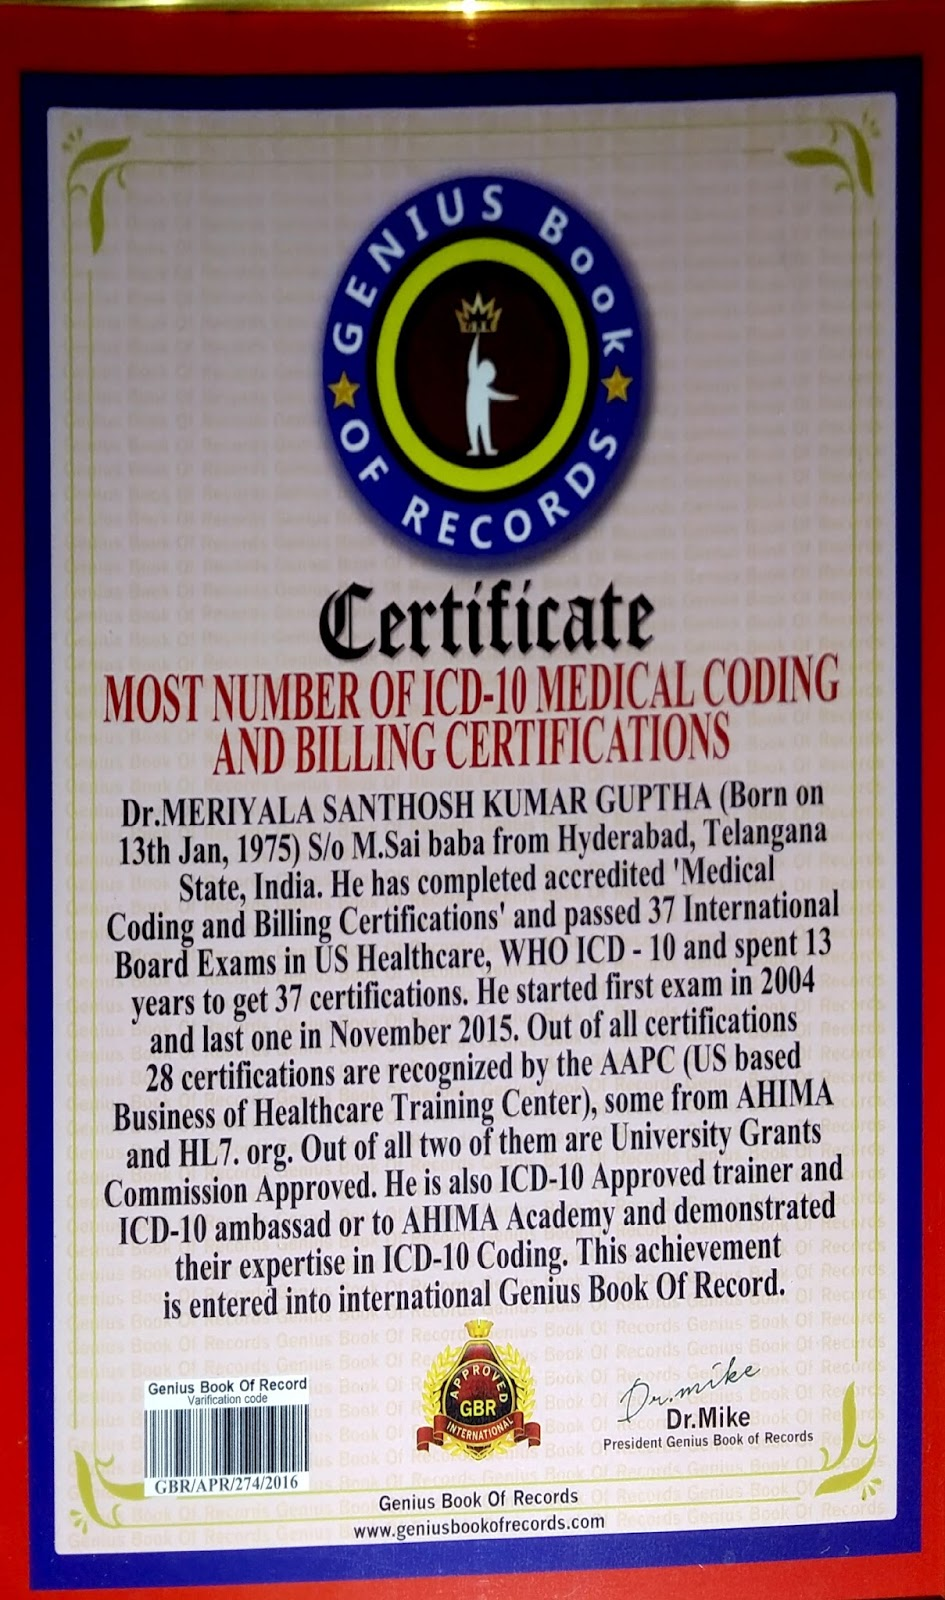 World record in medical coding dr guptha medesun medical coding the record for the most number of icd 10 medical coding and billing certifications was achieved by dr meriyala santosh kumar gupta of hyderabad 1betcityfo Gallery